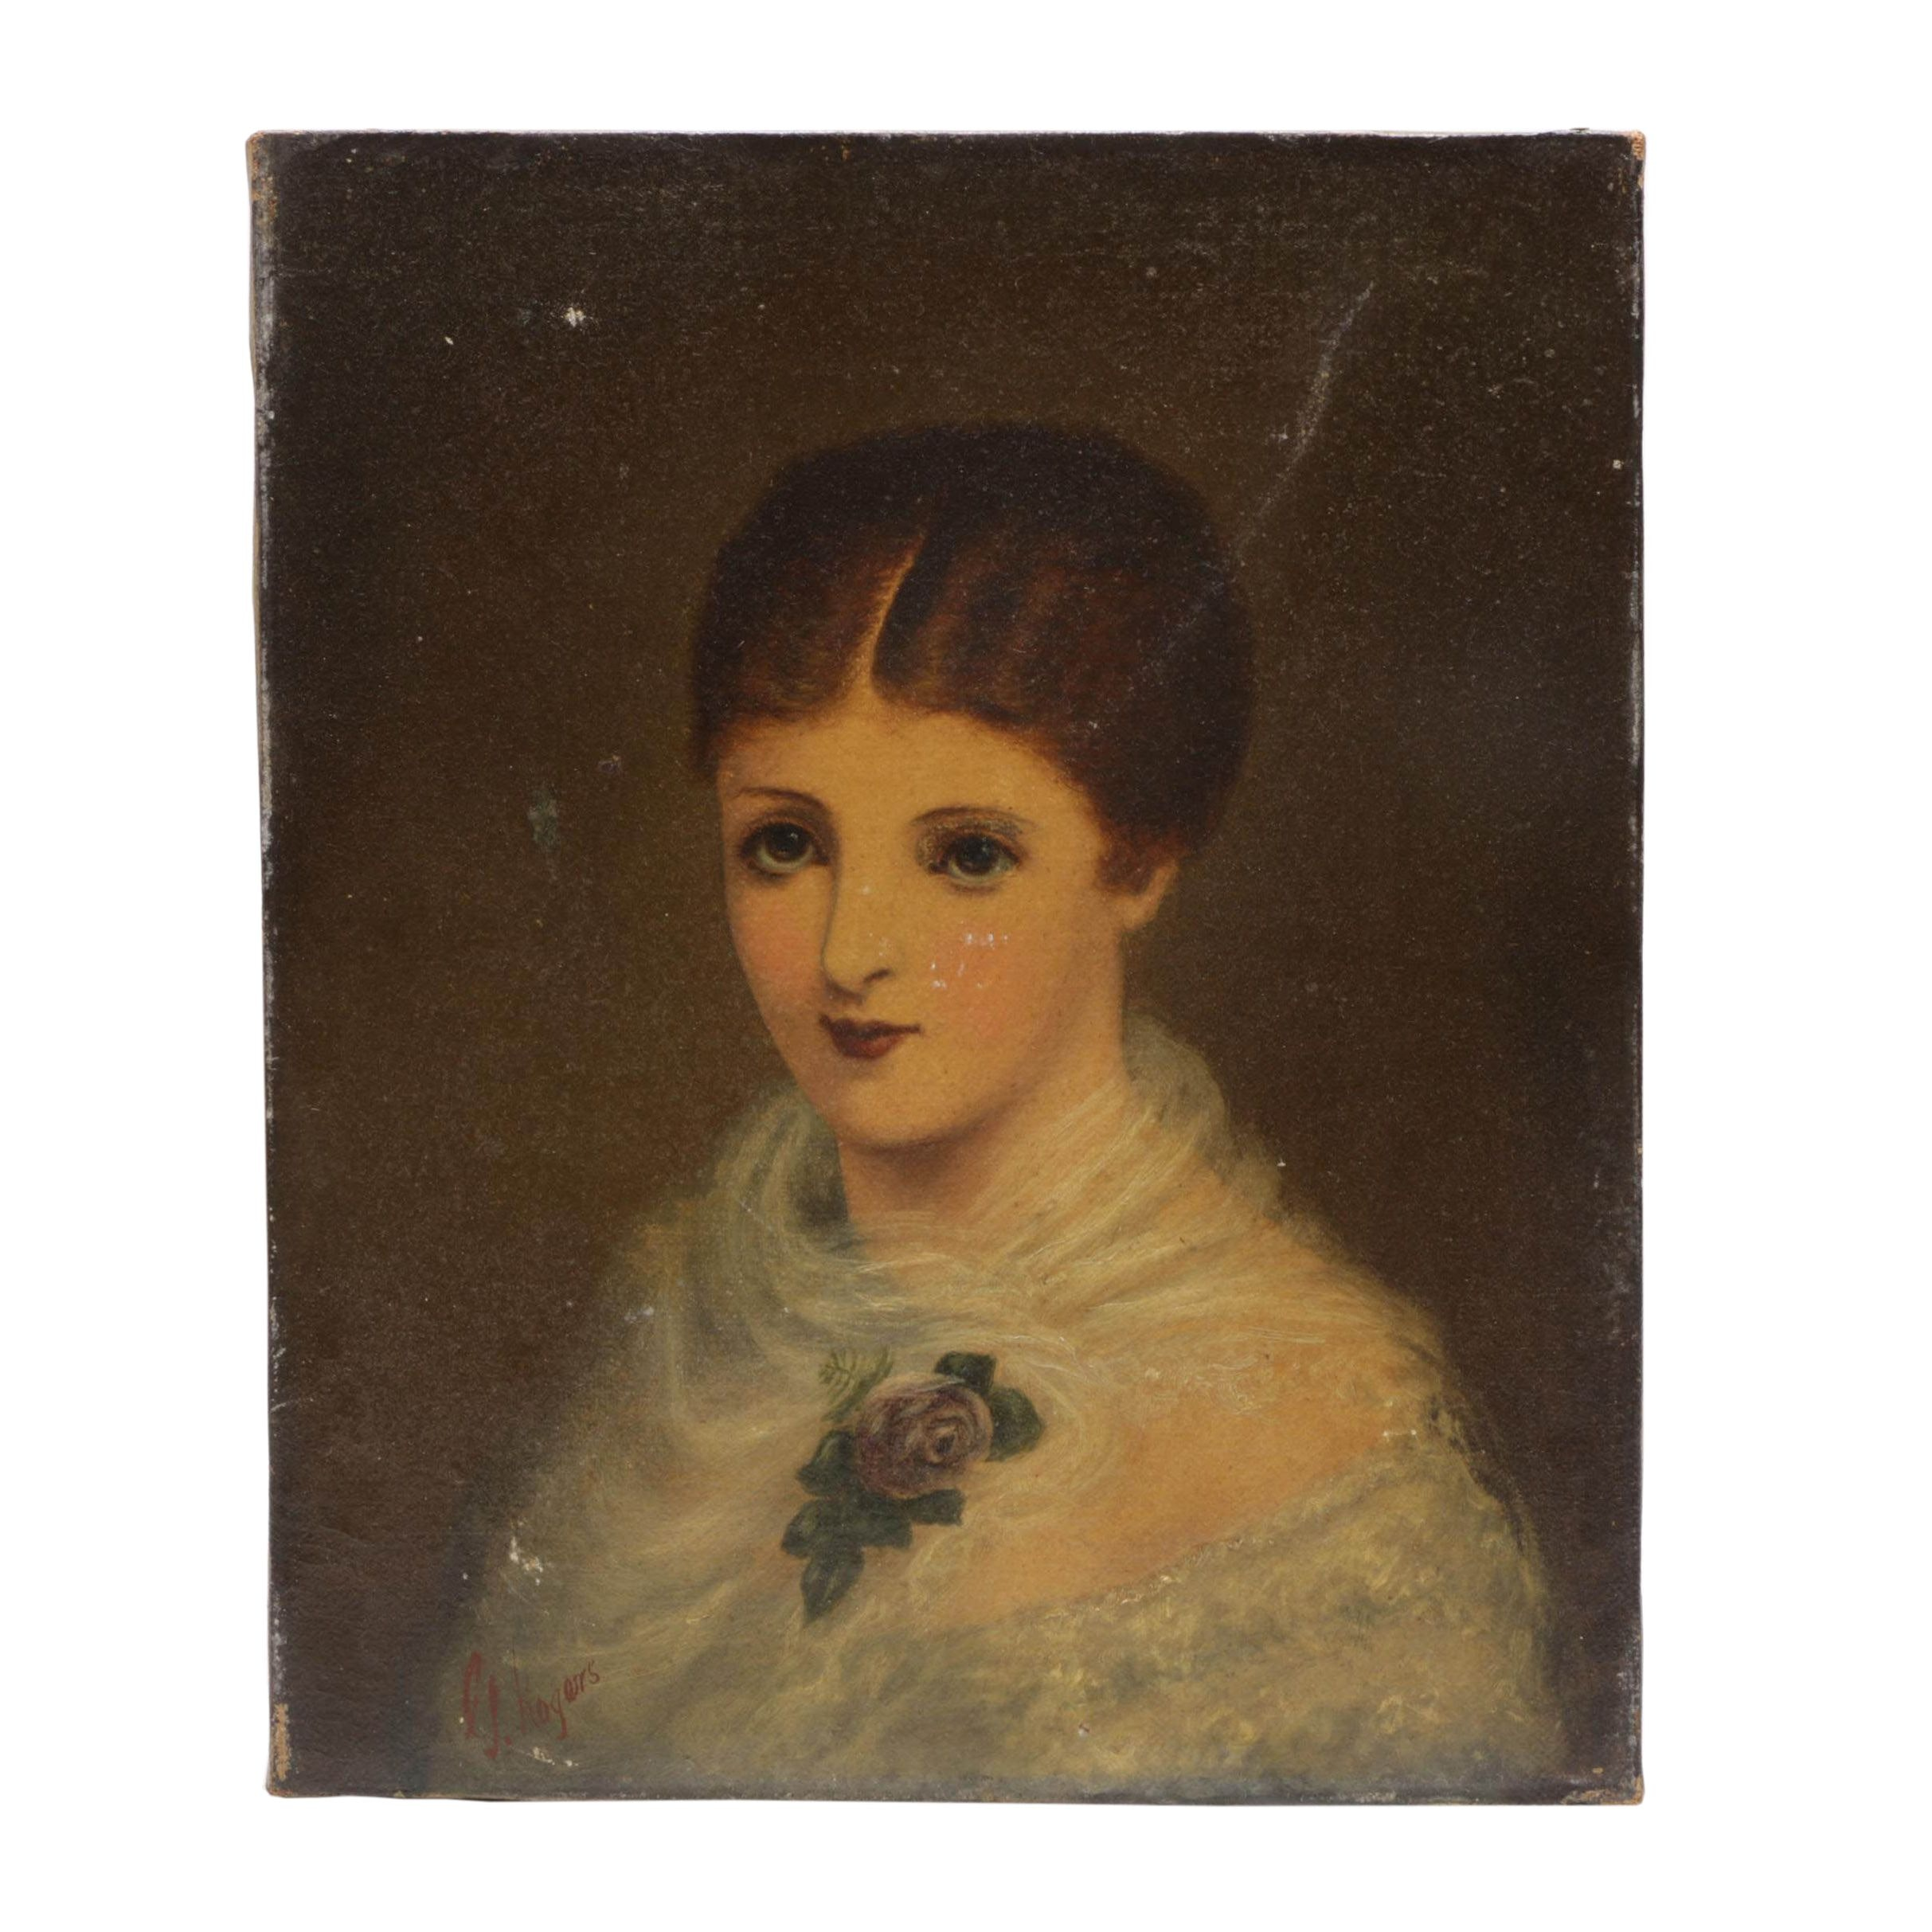 19th-Century Oil Portrait Painting